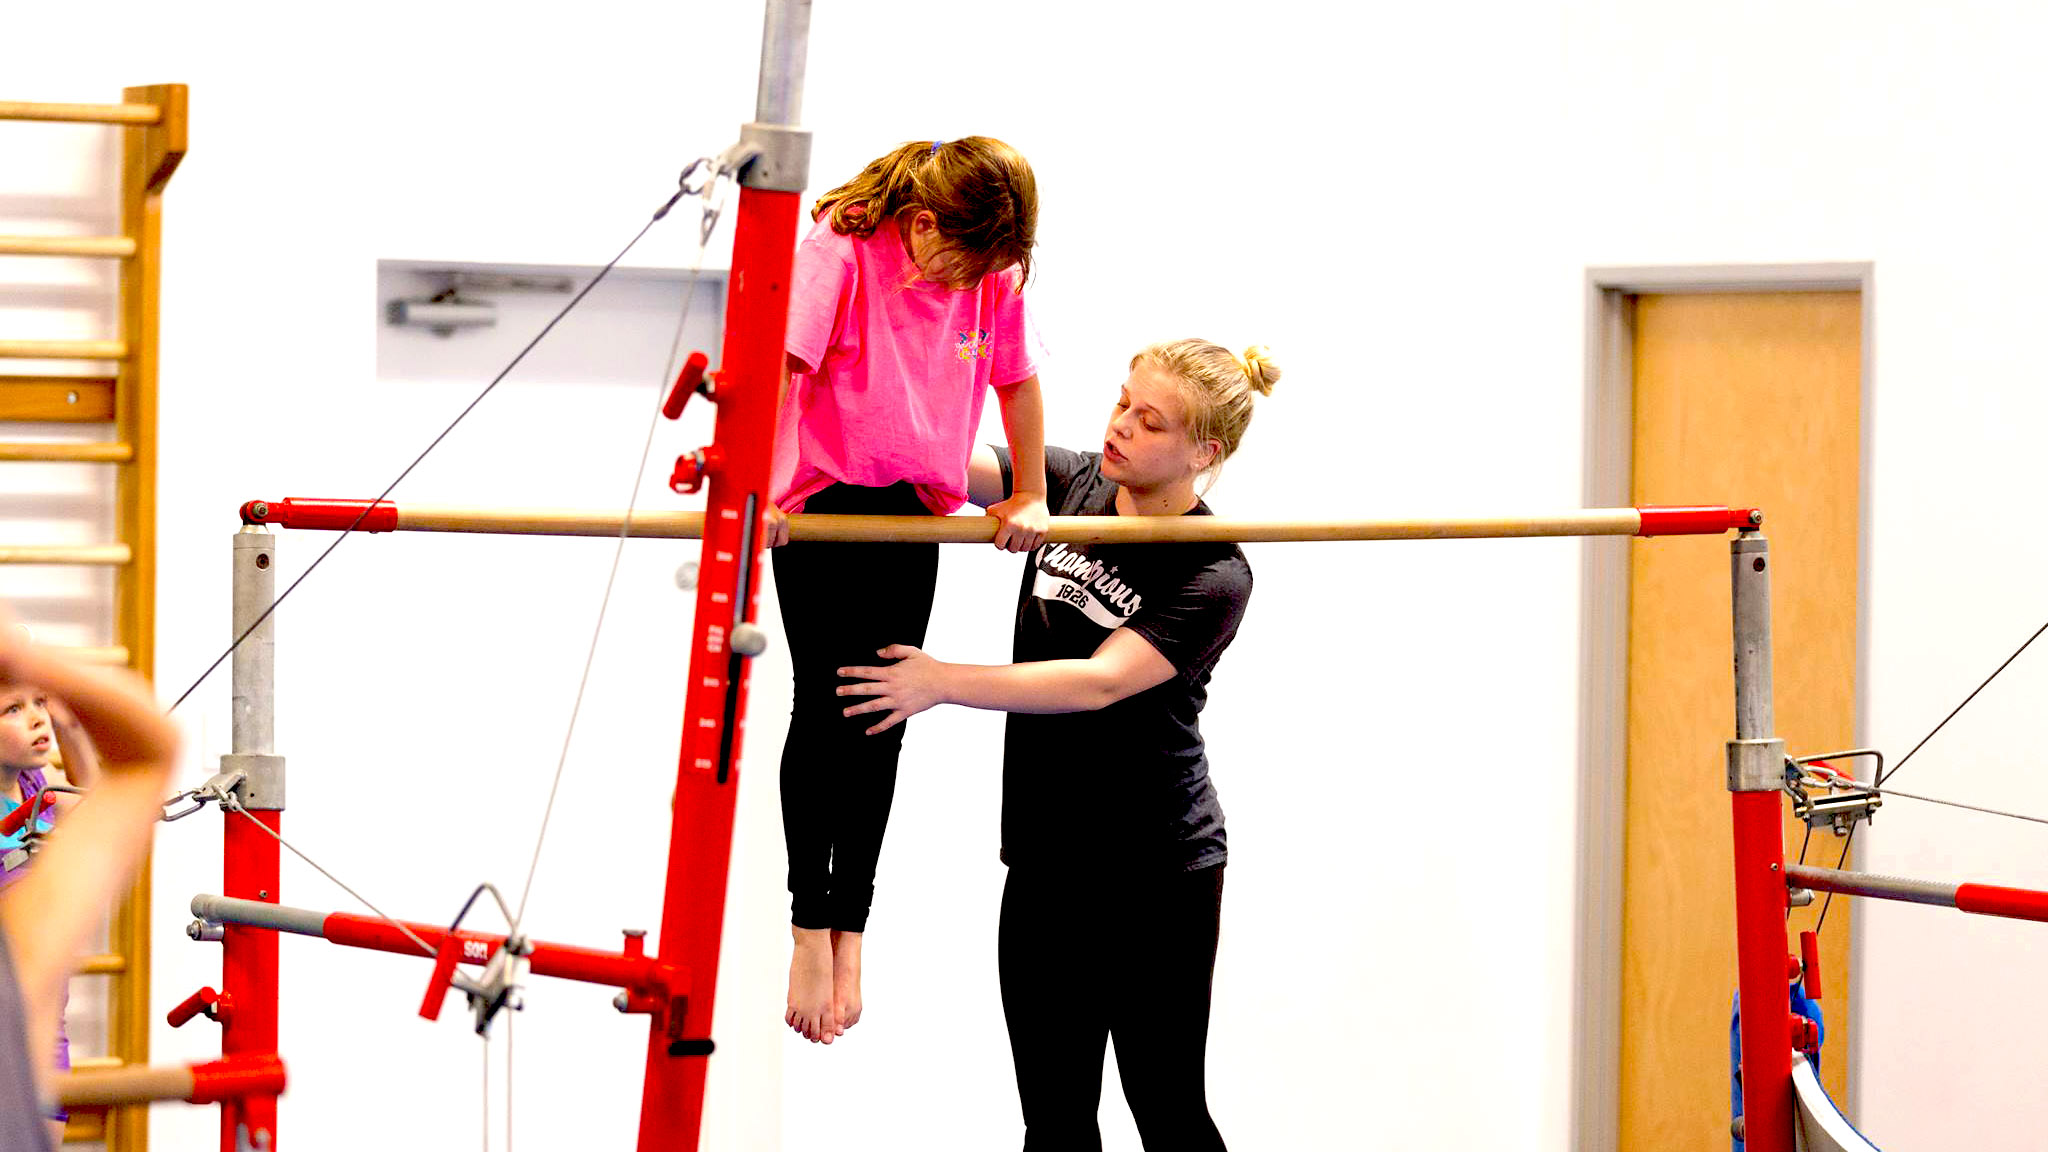 Image of Champion Gymnastics Camp